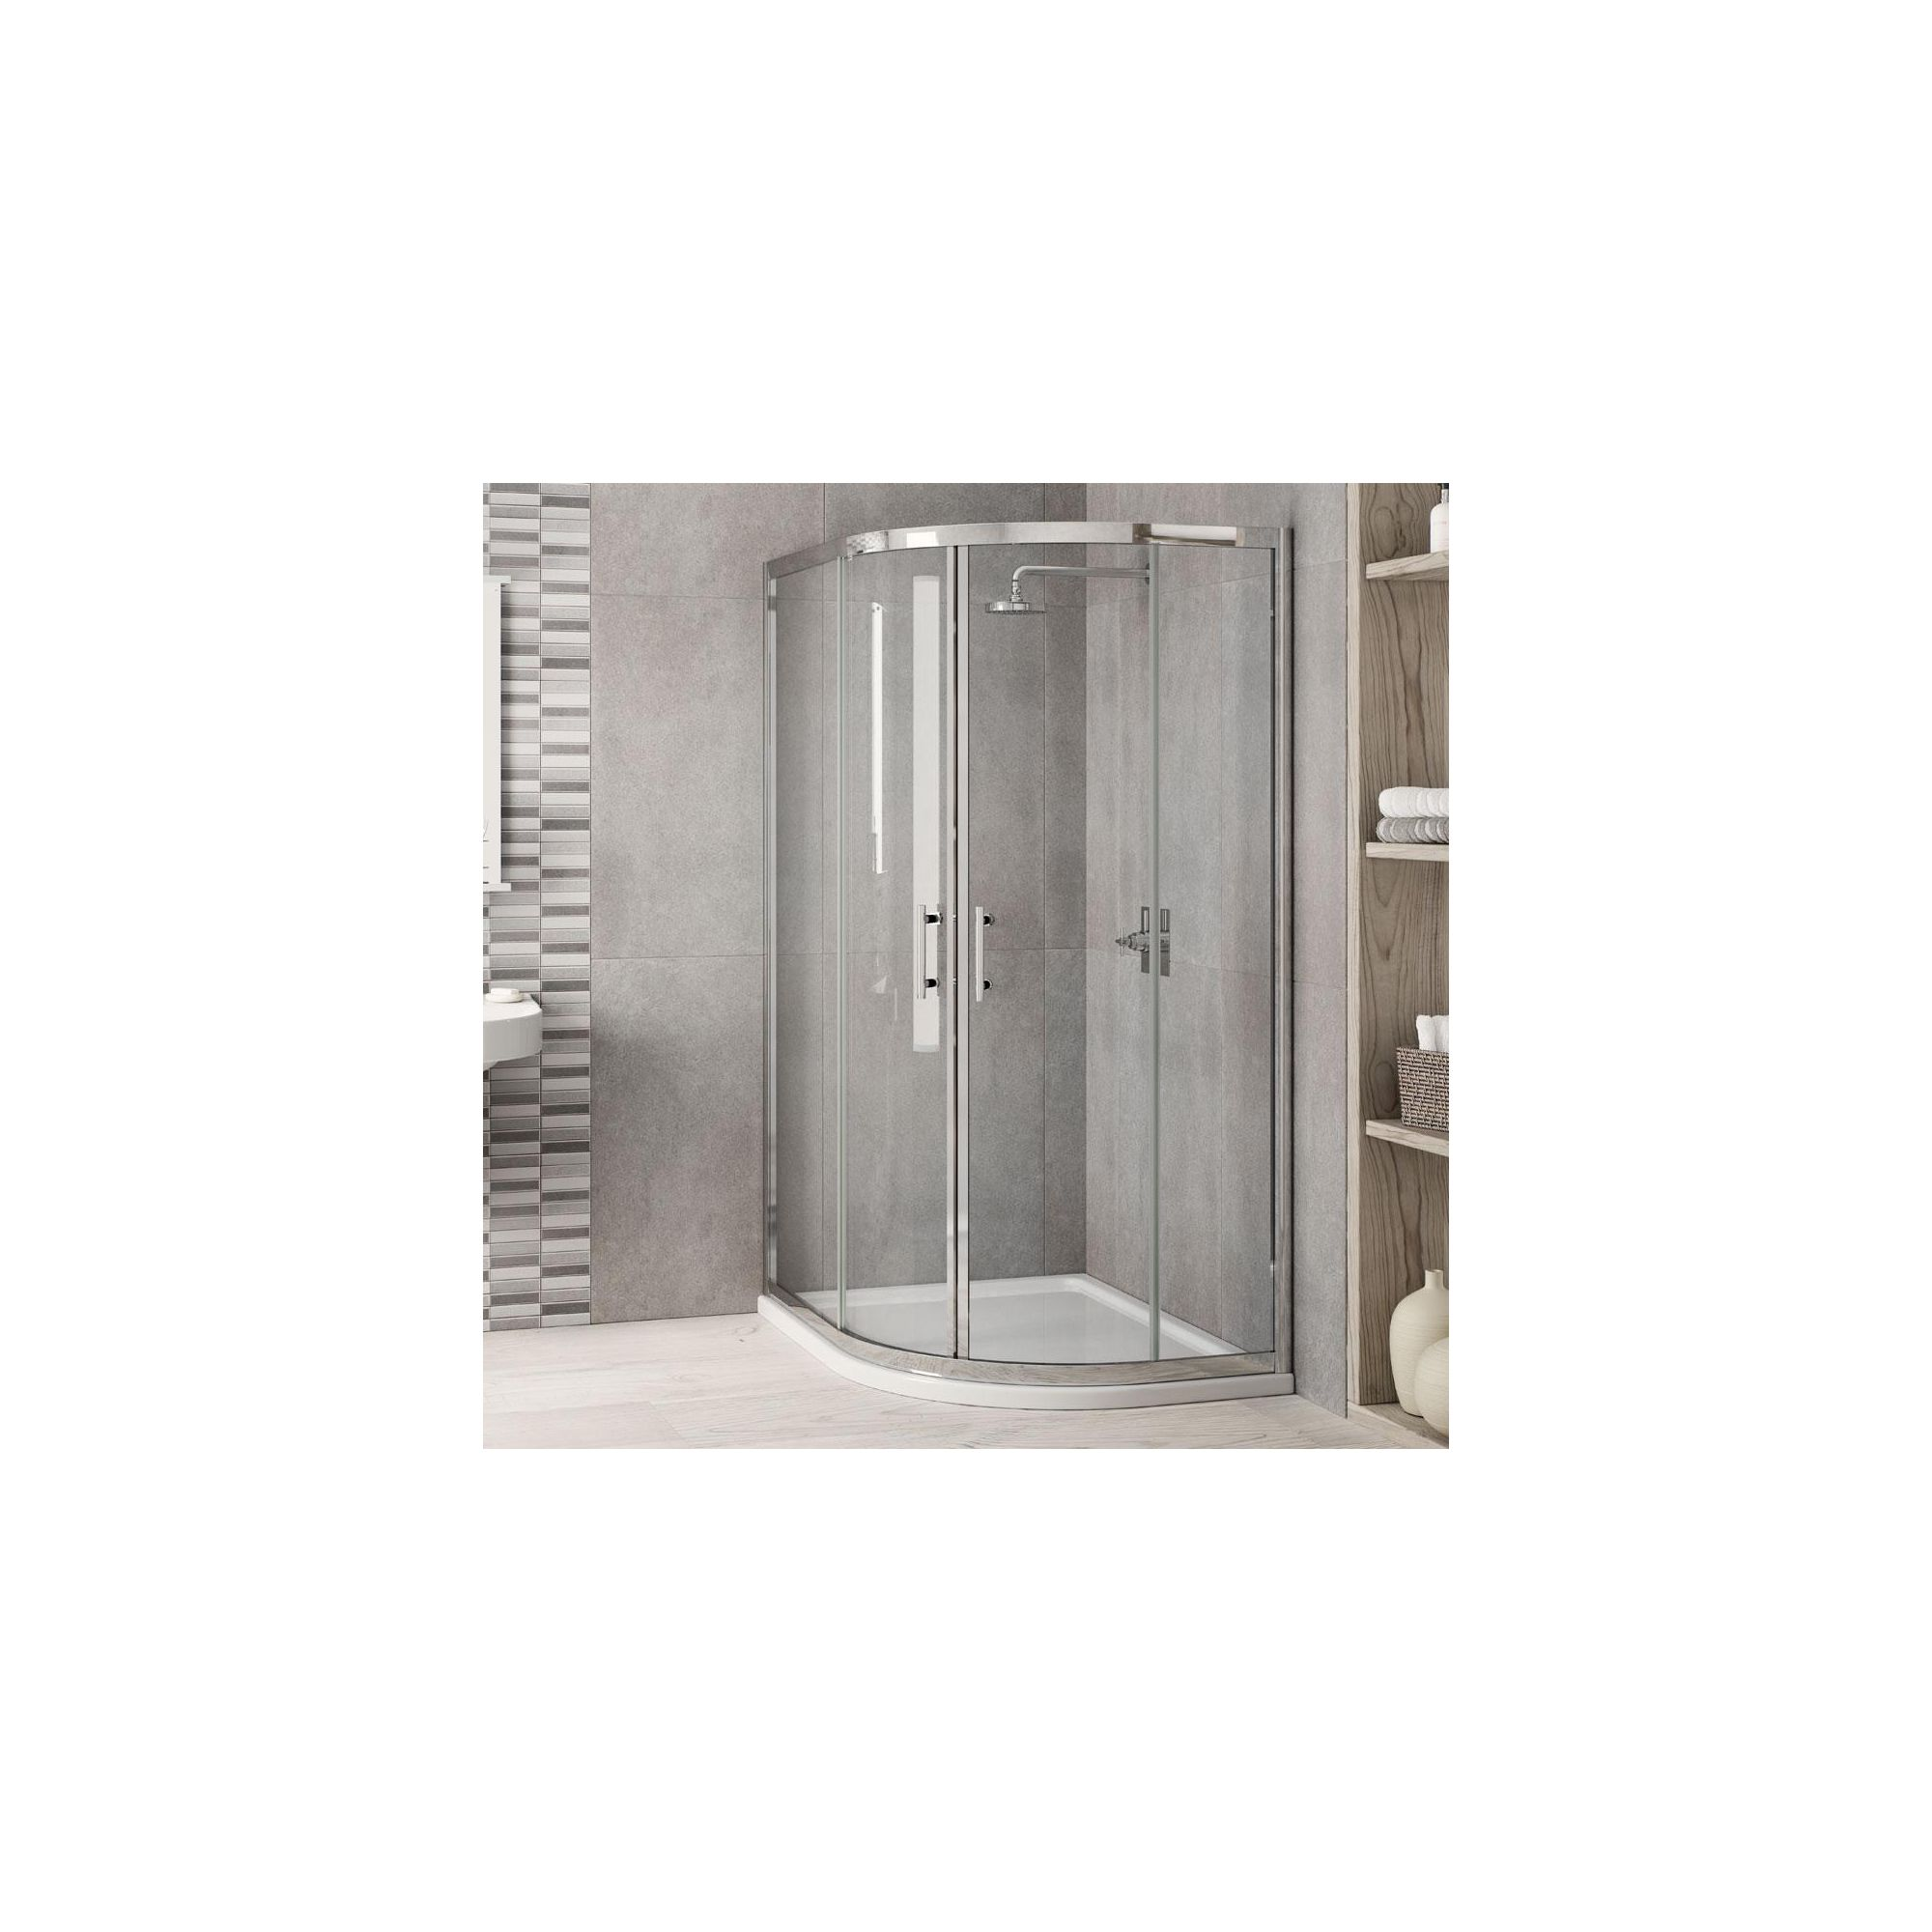 Elemis Inspire Offset Quadrant Shower Enclosure, 900mm x 800mm, 6mm Glass, Low Profile Tray, Left Handed at Tesco Direct